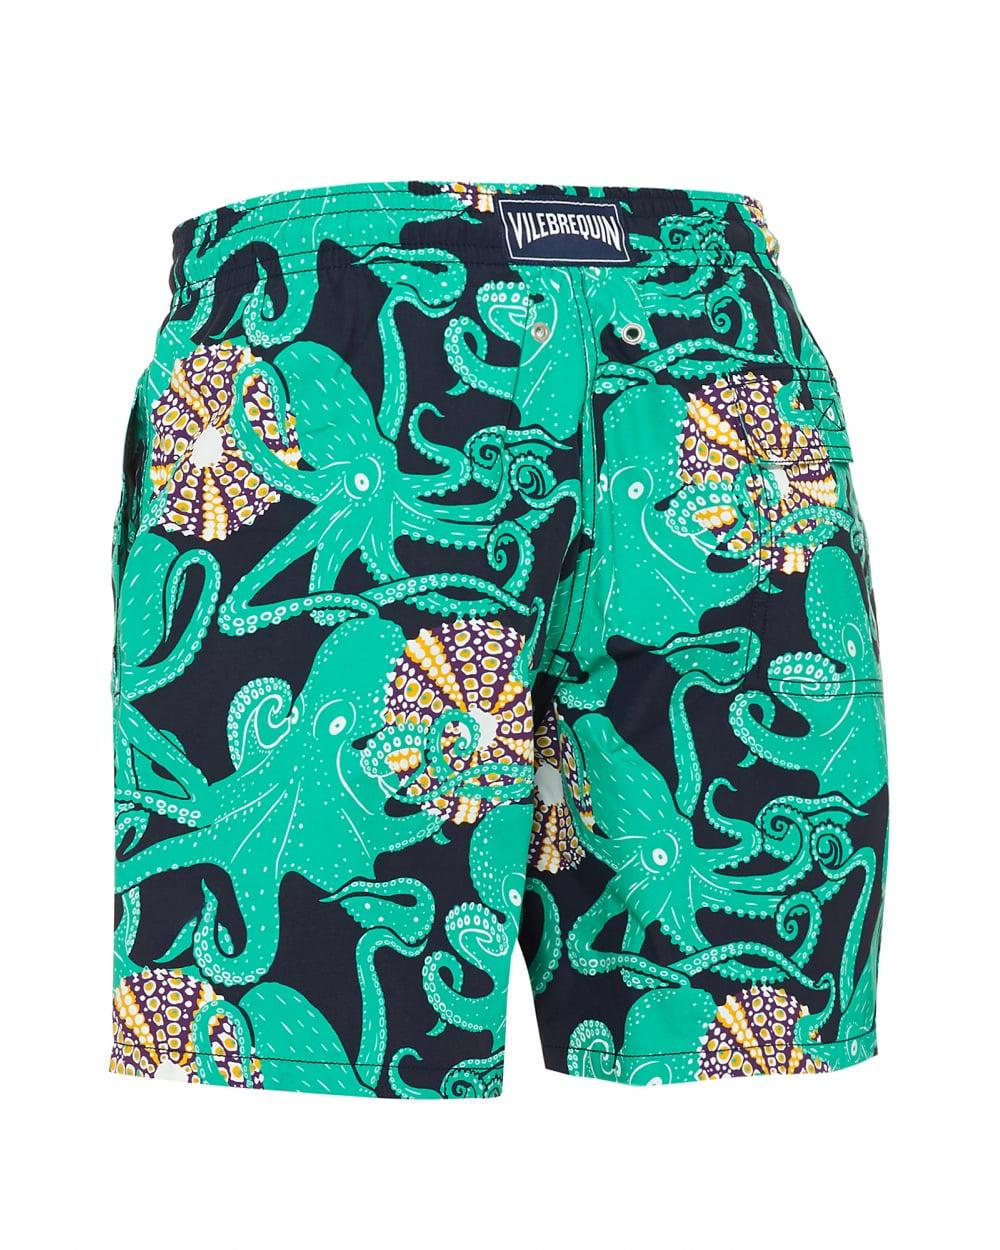 2a9f9ef6ae Vilebrequin Moorea Swimshorts, Navy Octopus Print Swimming Trunks in Blue  for Men - Save 30% - Lyst